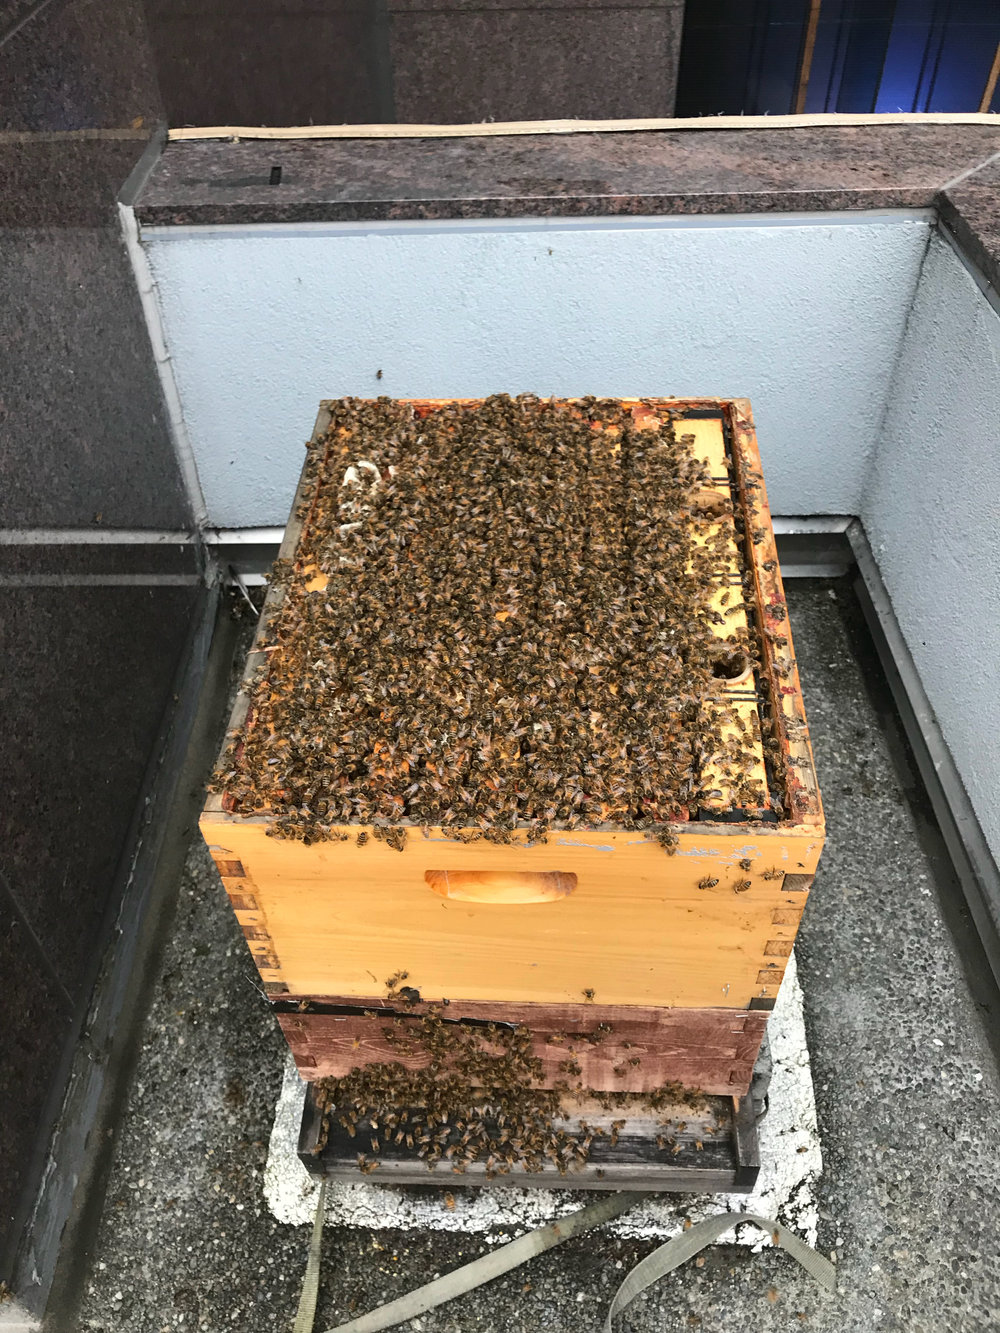 West facing hive with growing population